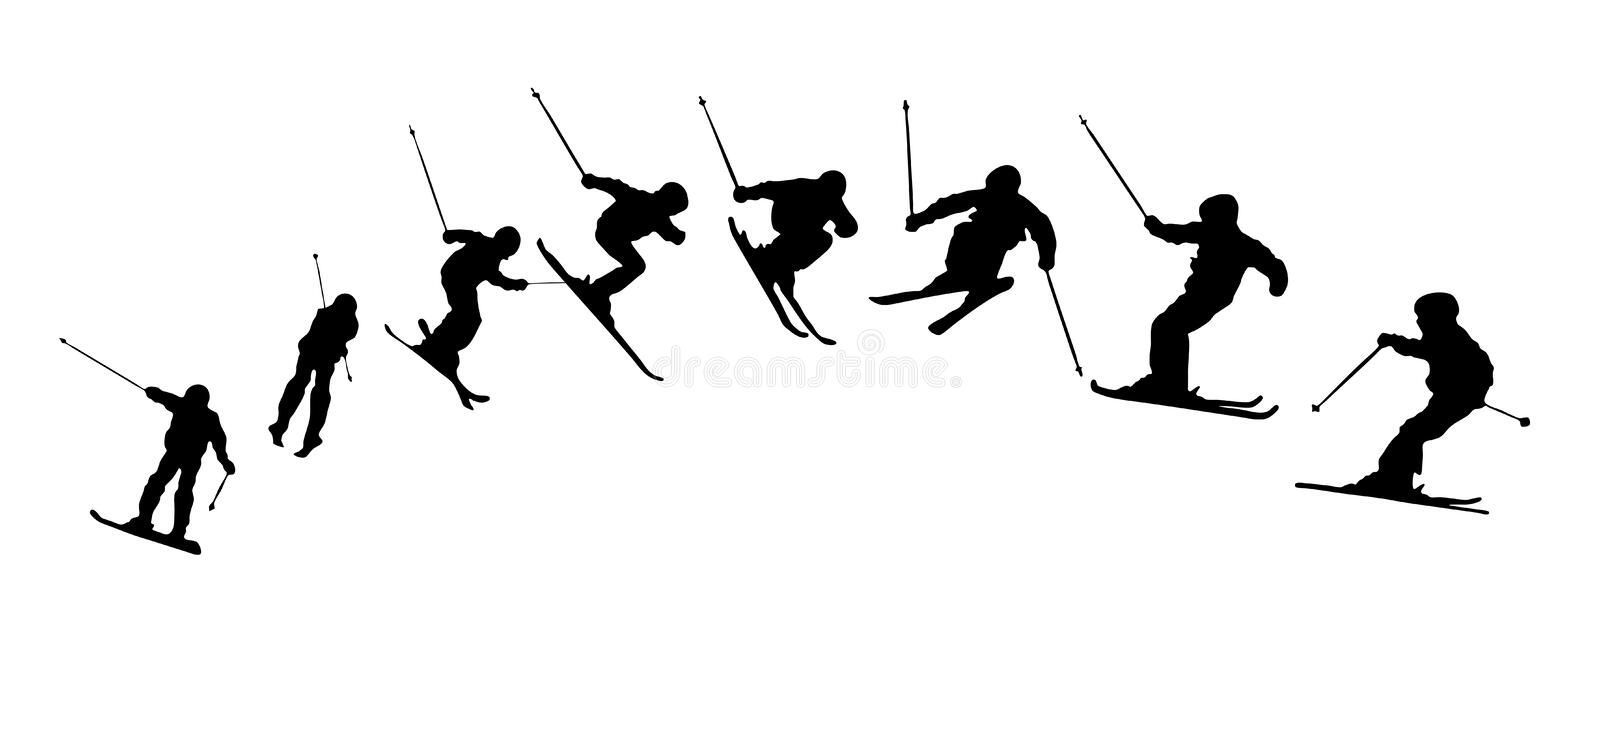 Skiing sequence silhouettes stock illustration